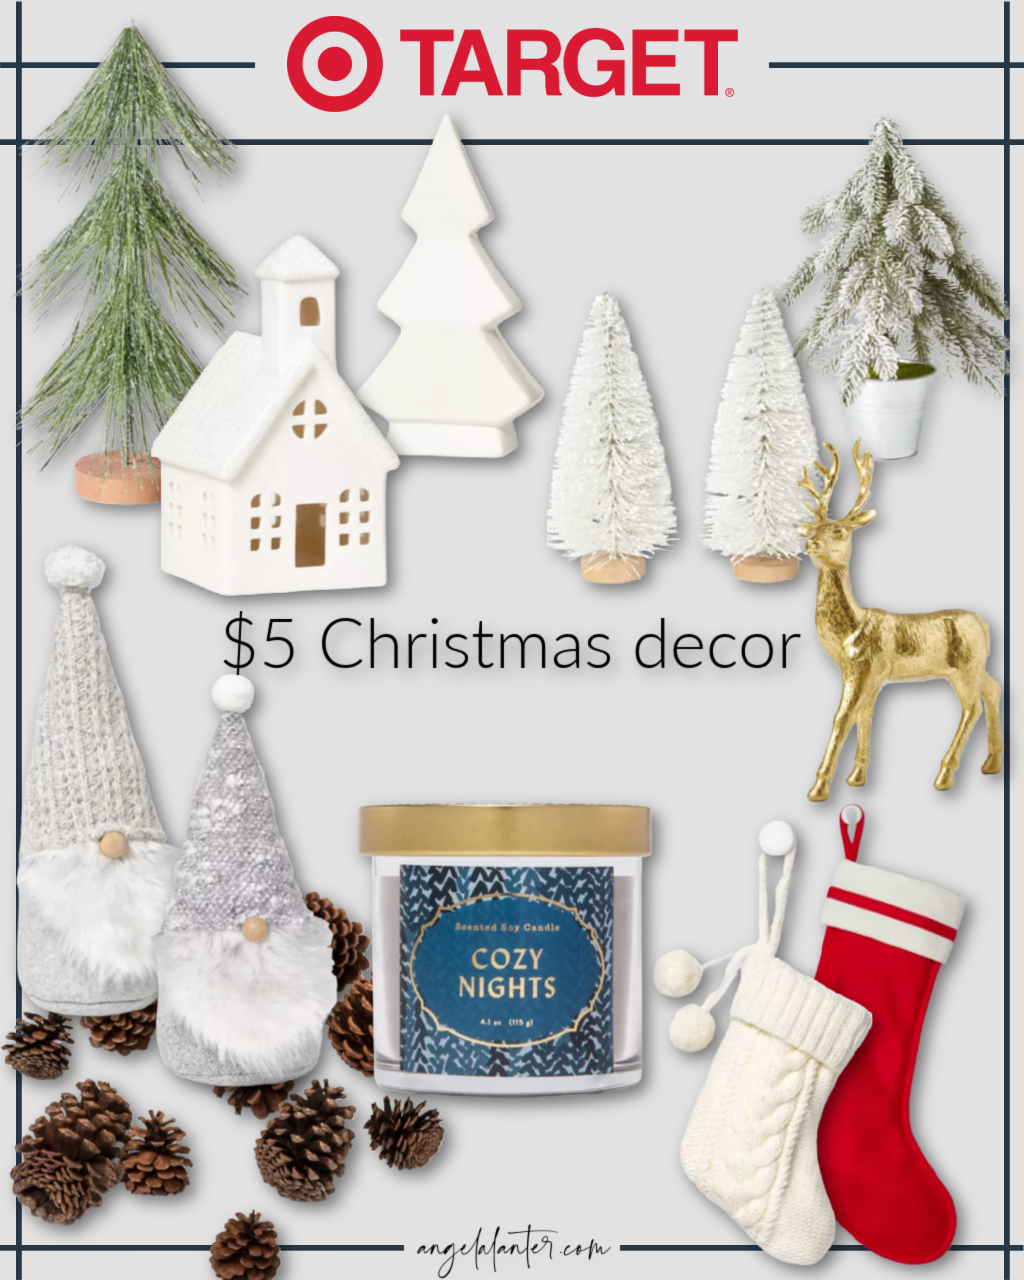 11 Christmas Decor Pieces from Target that Cost Only $5!